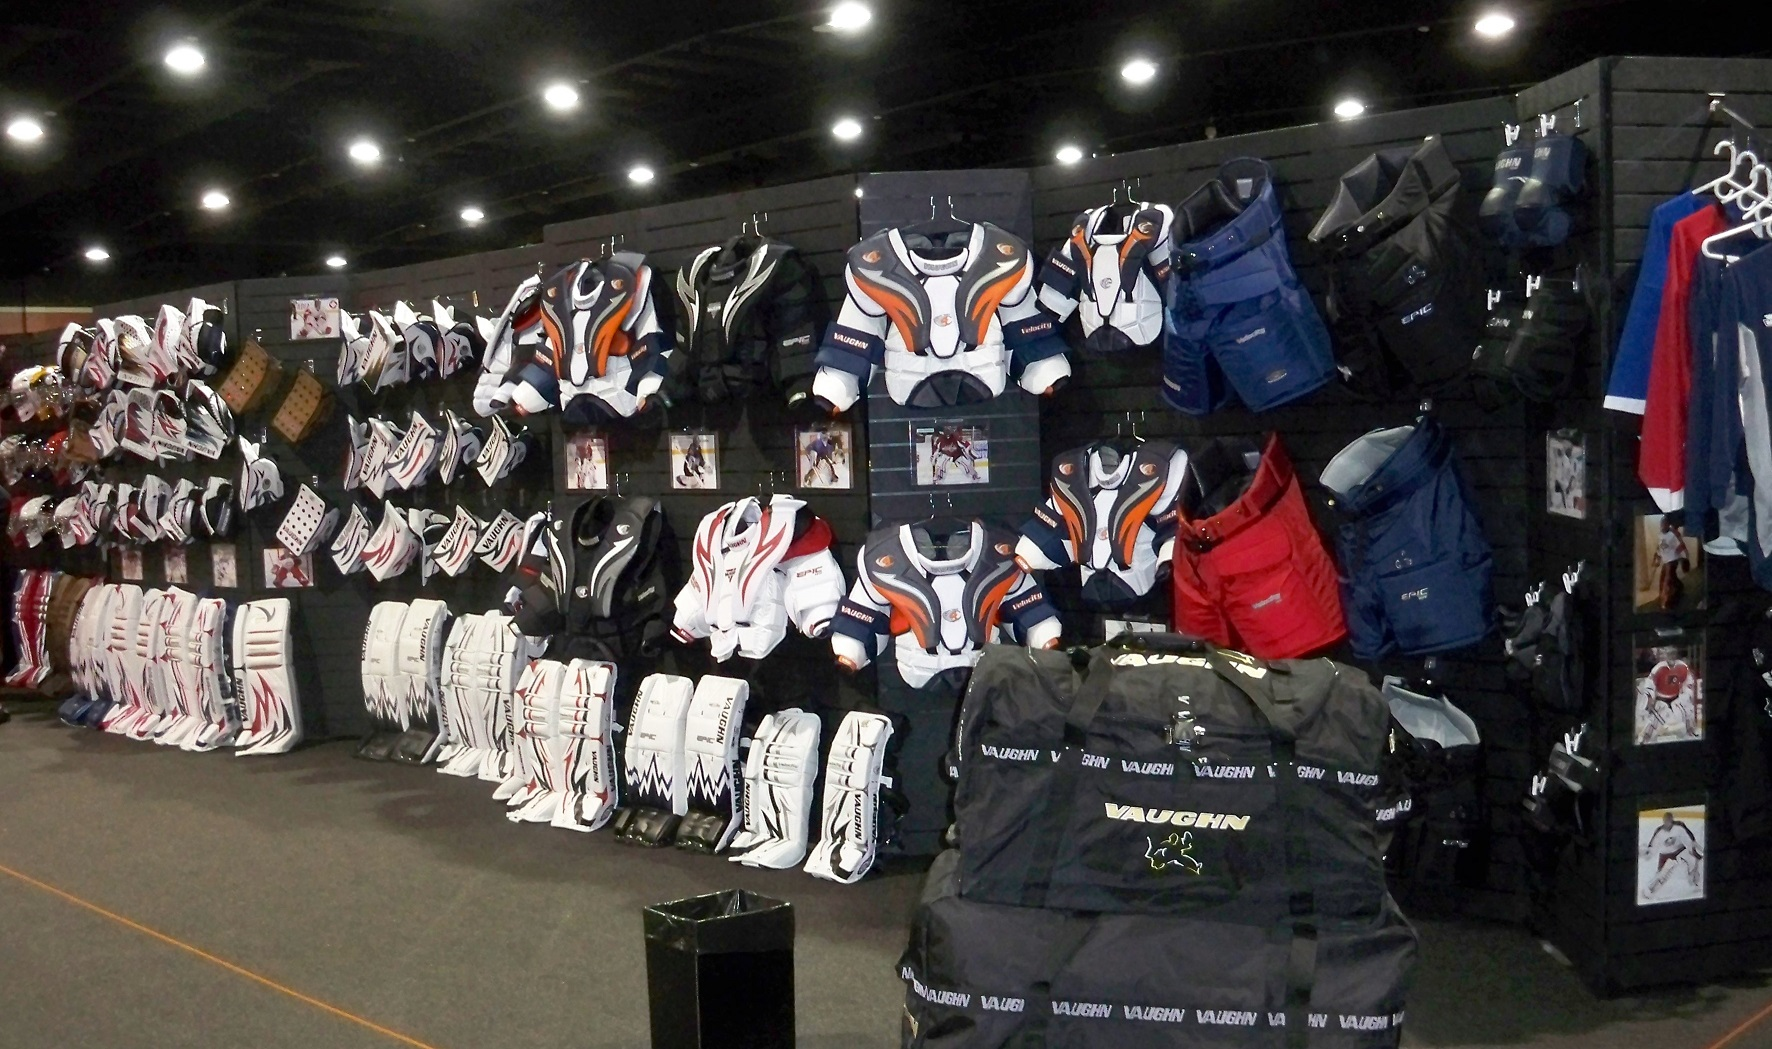 Sporting Goods Display.jpg